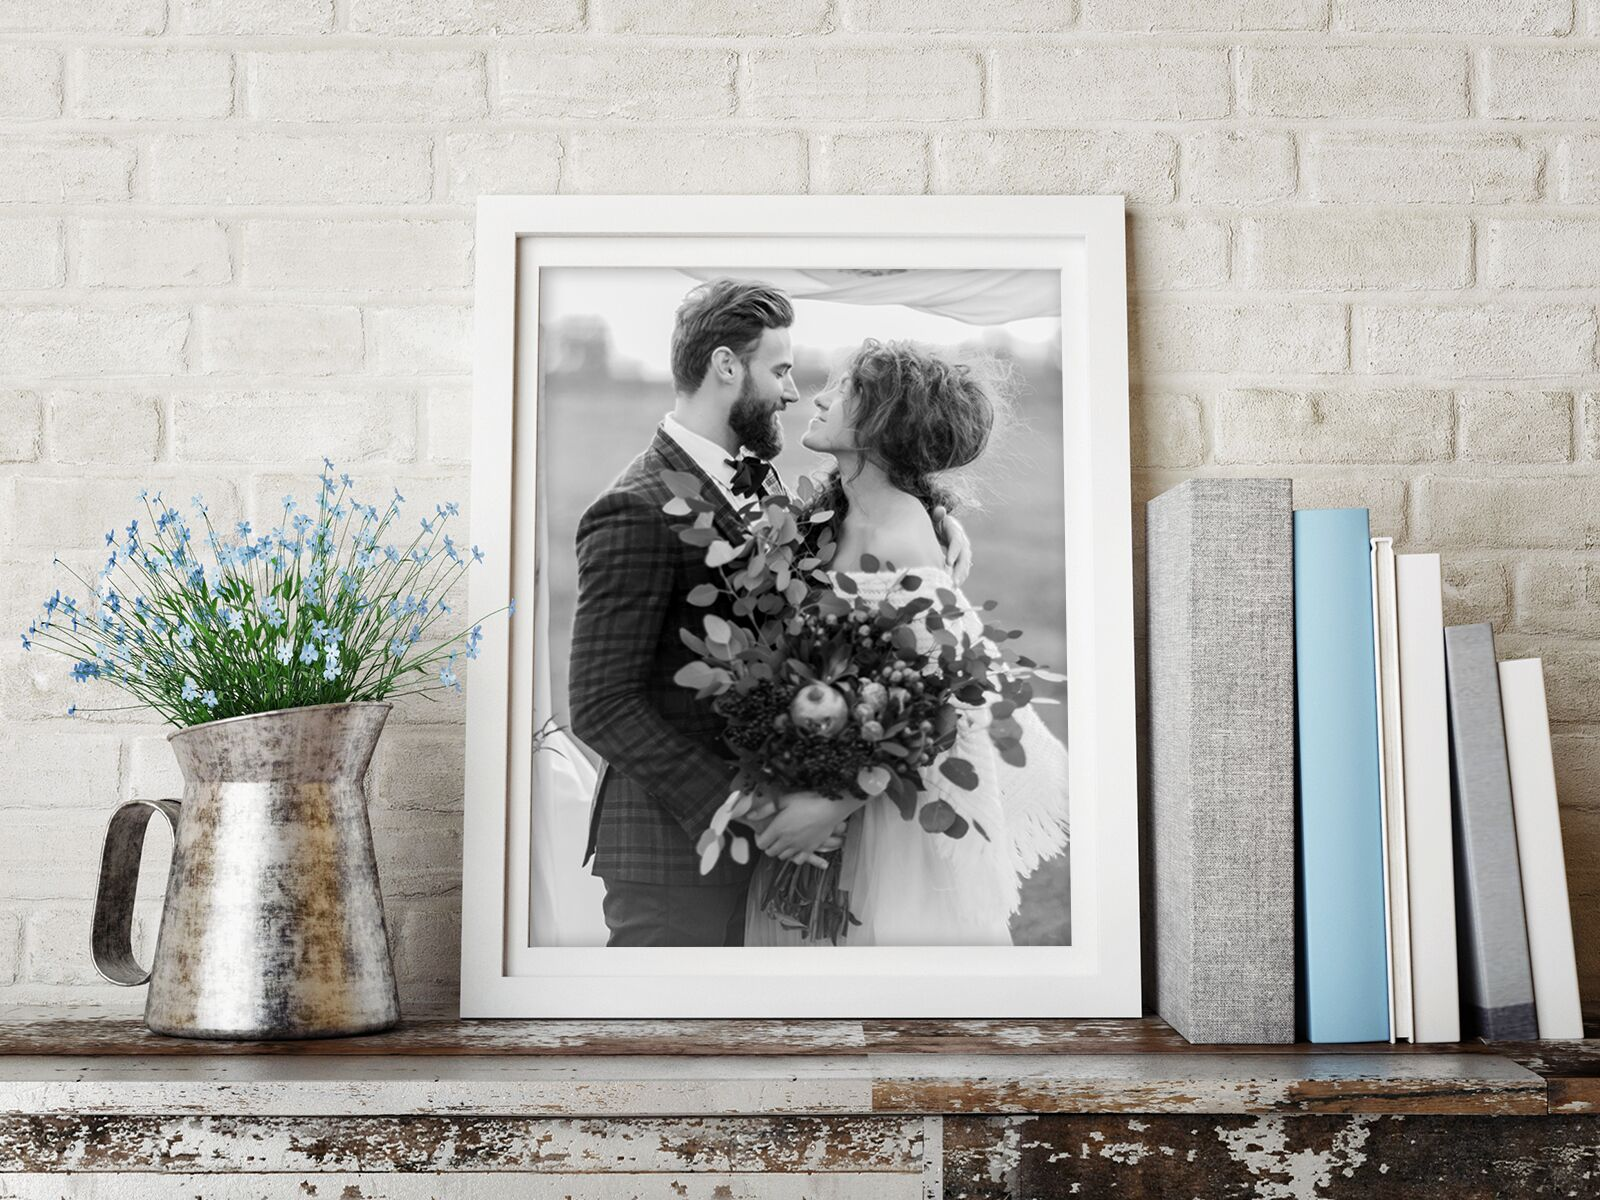 Gift Ideas For Groom On Wedding Day: Thank-You Gift Ideas For Parents Of The Bride And Groom